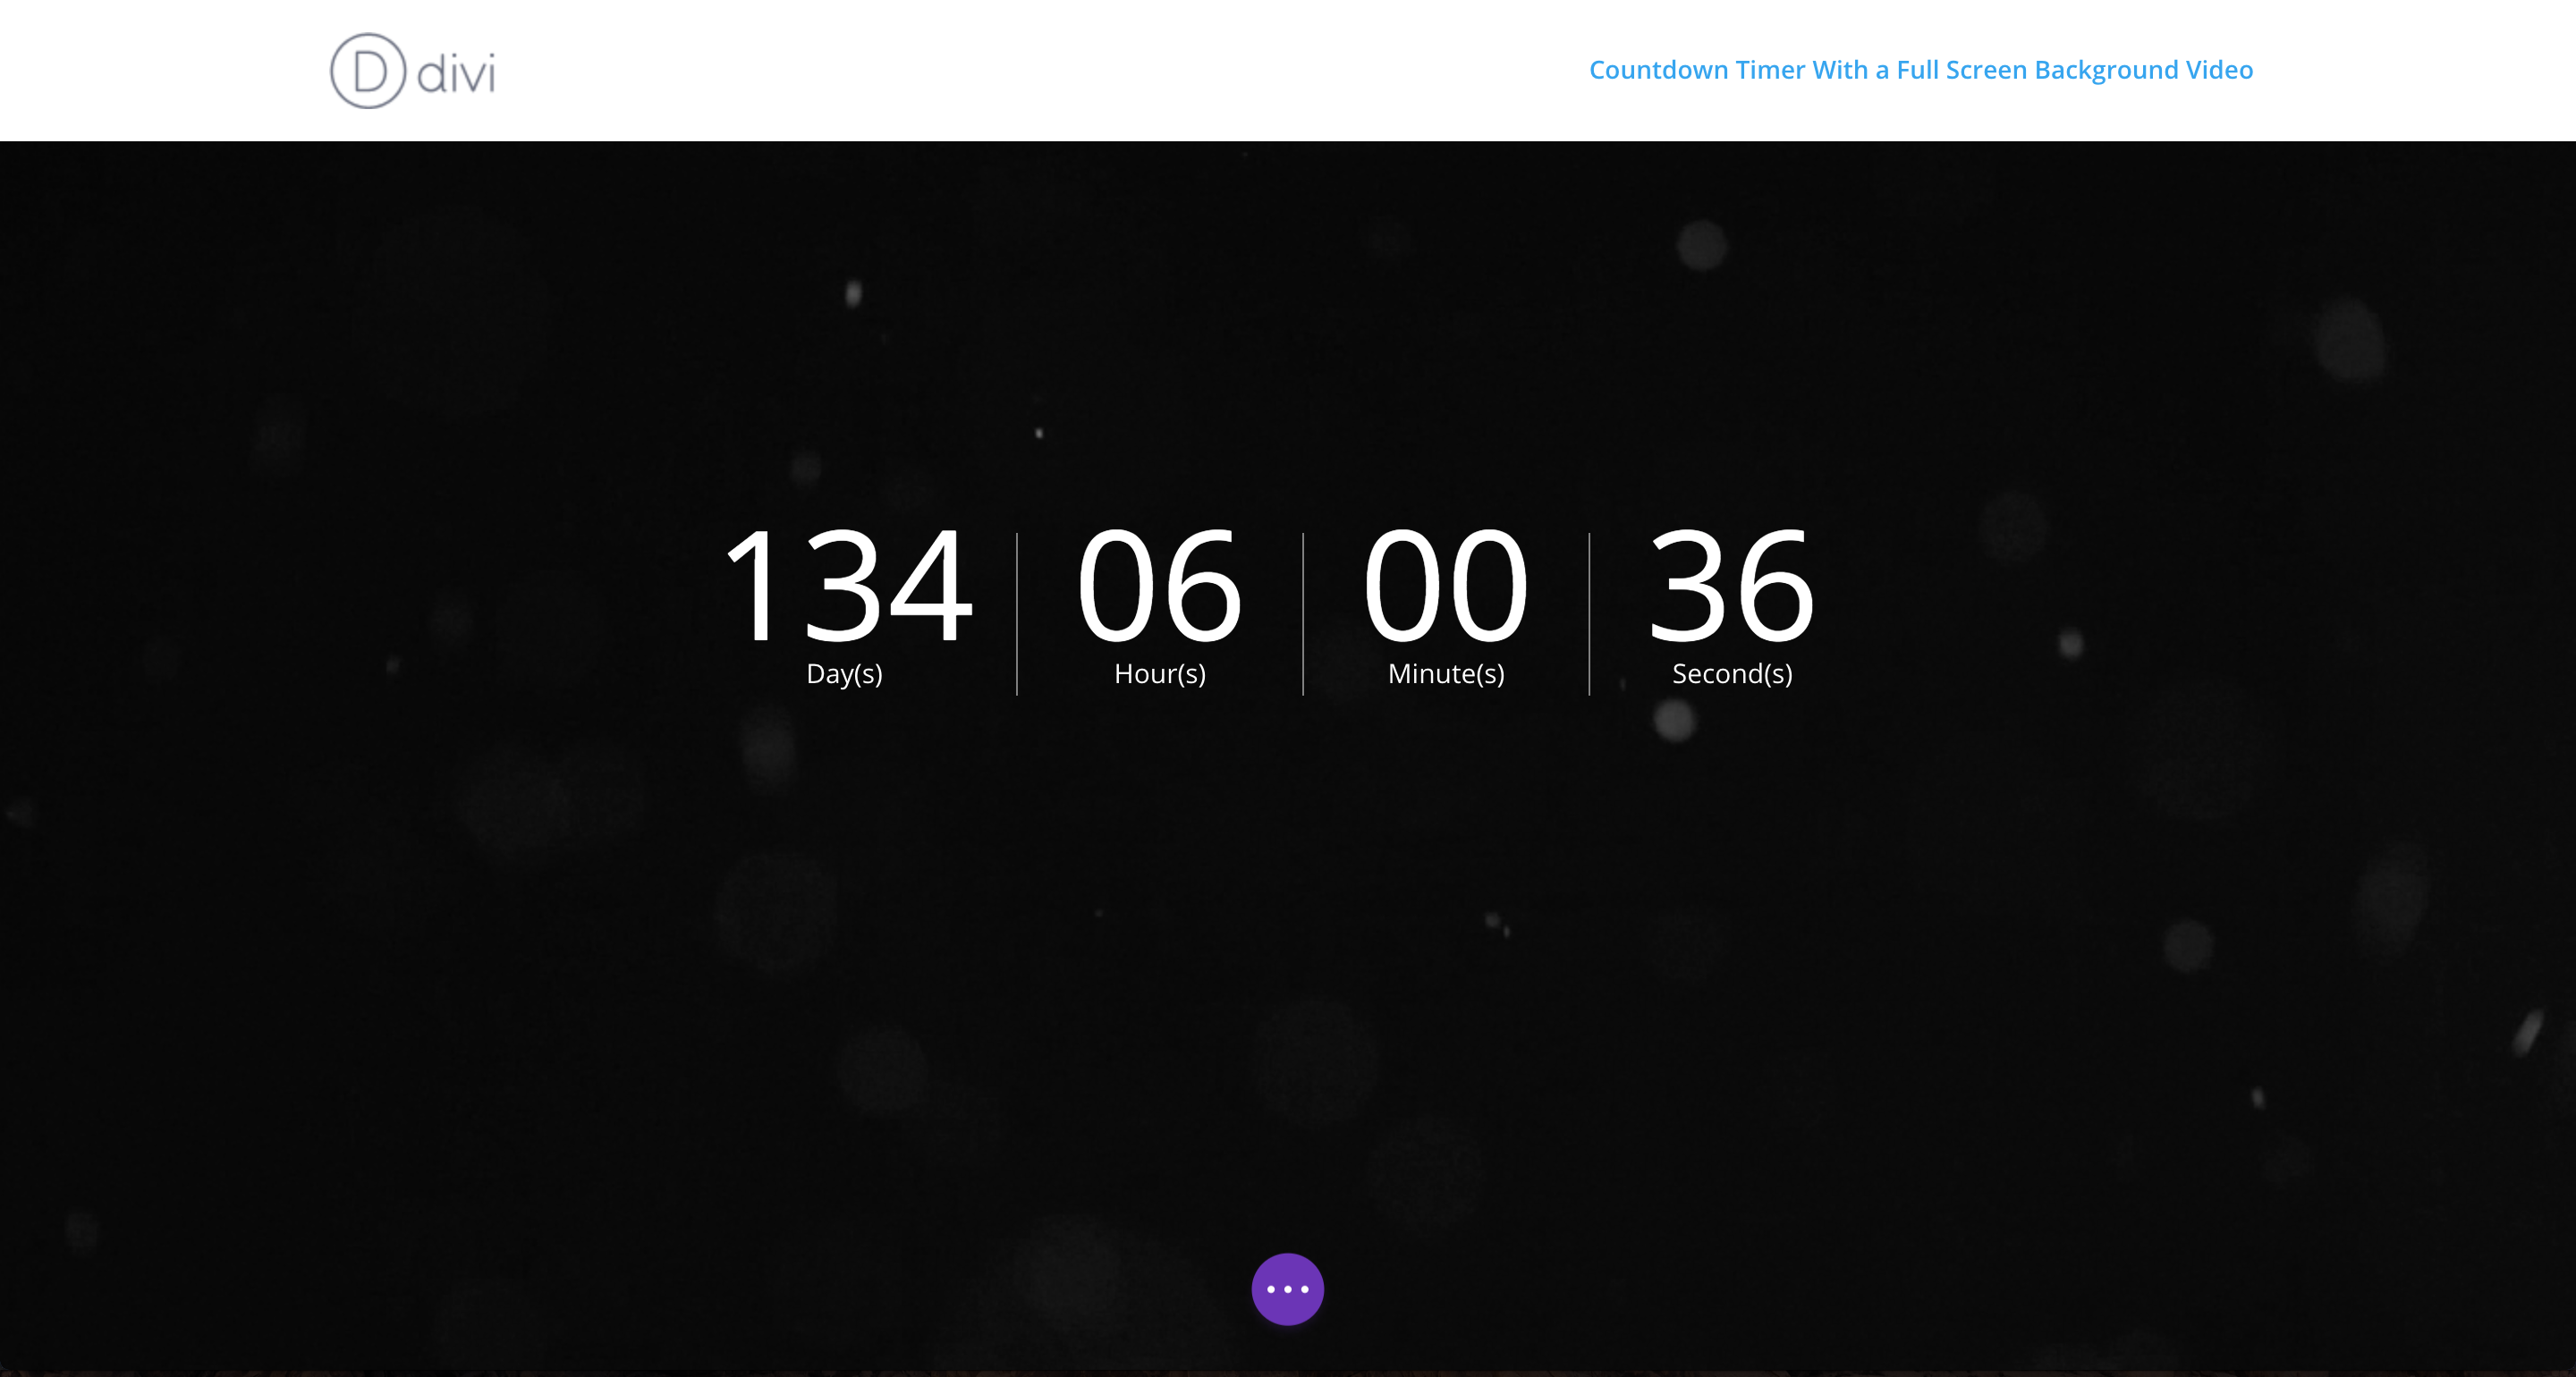 countdown timer with full screen background video completed